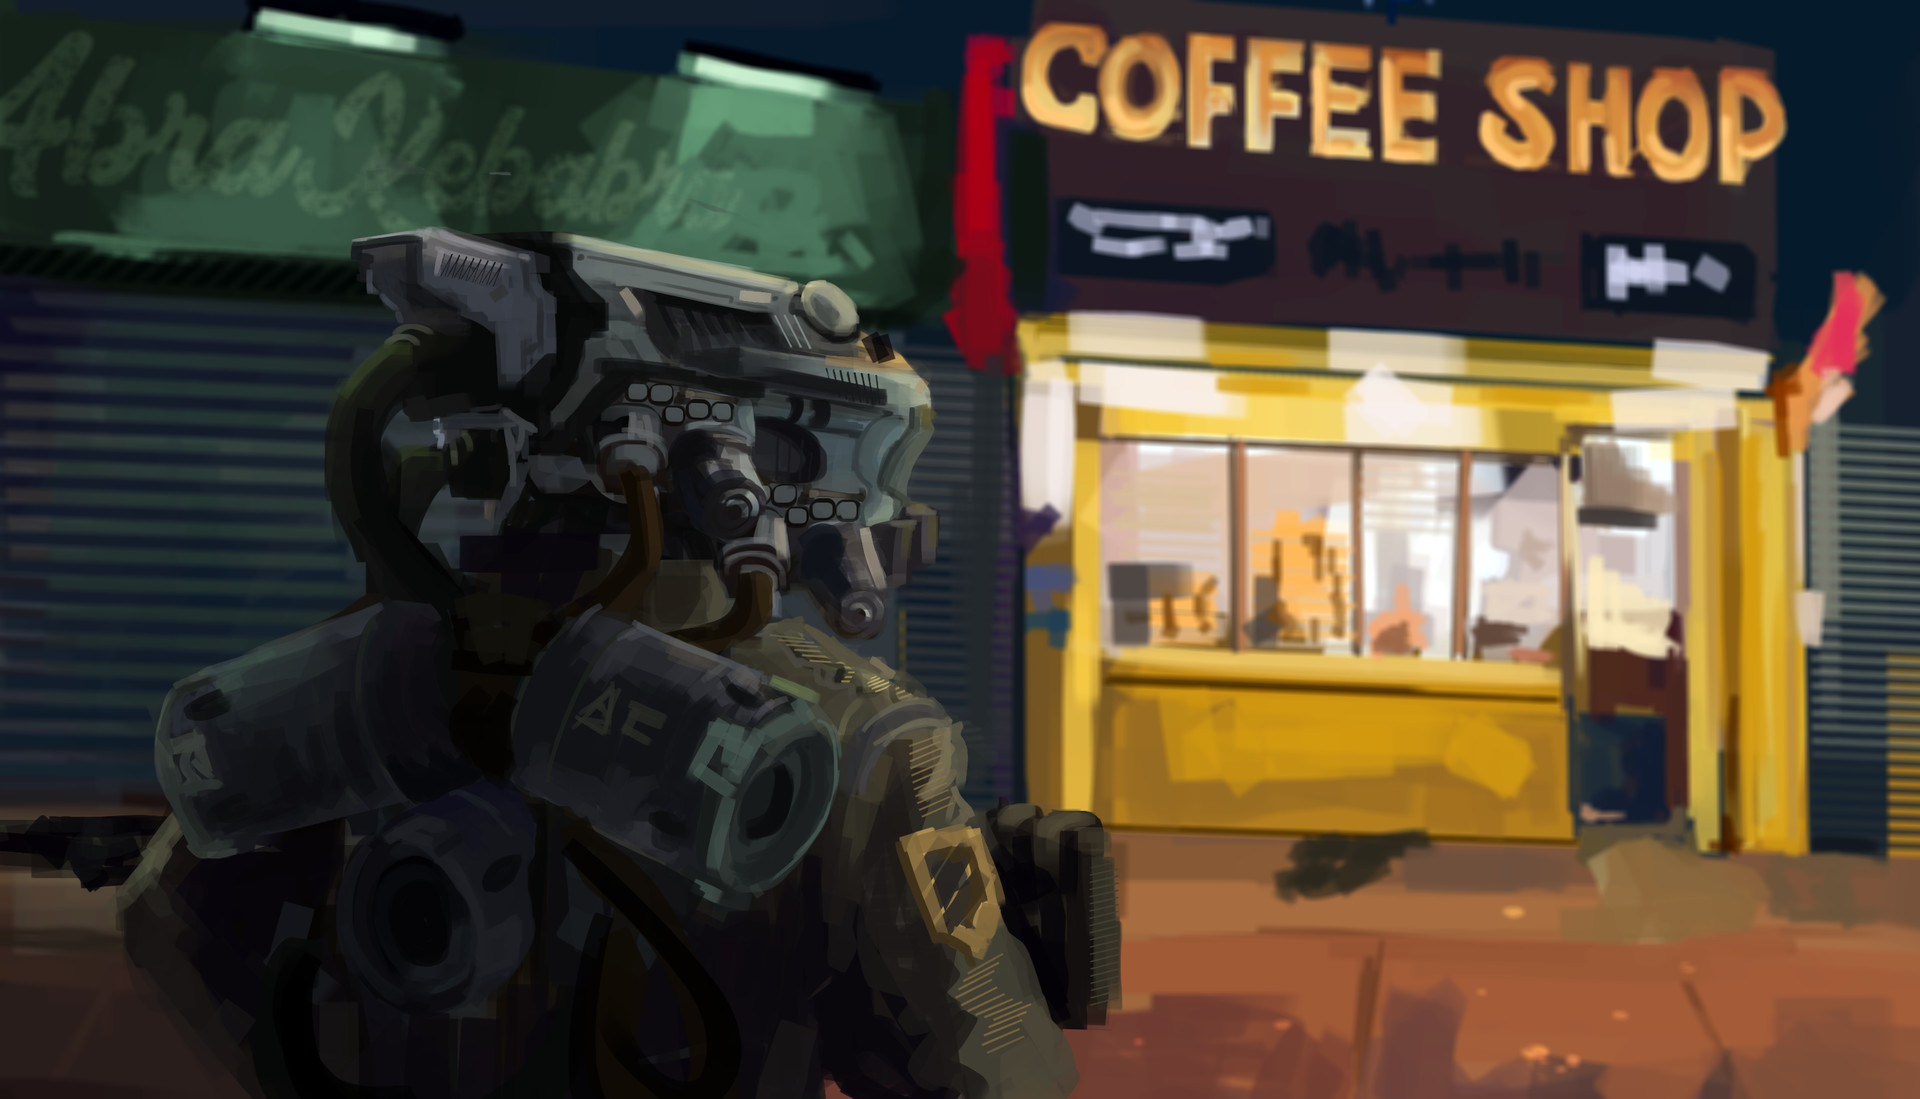 Jack dowell coffee shop robot 02